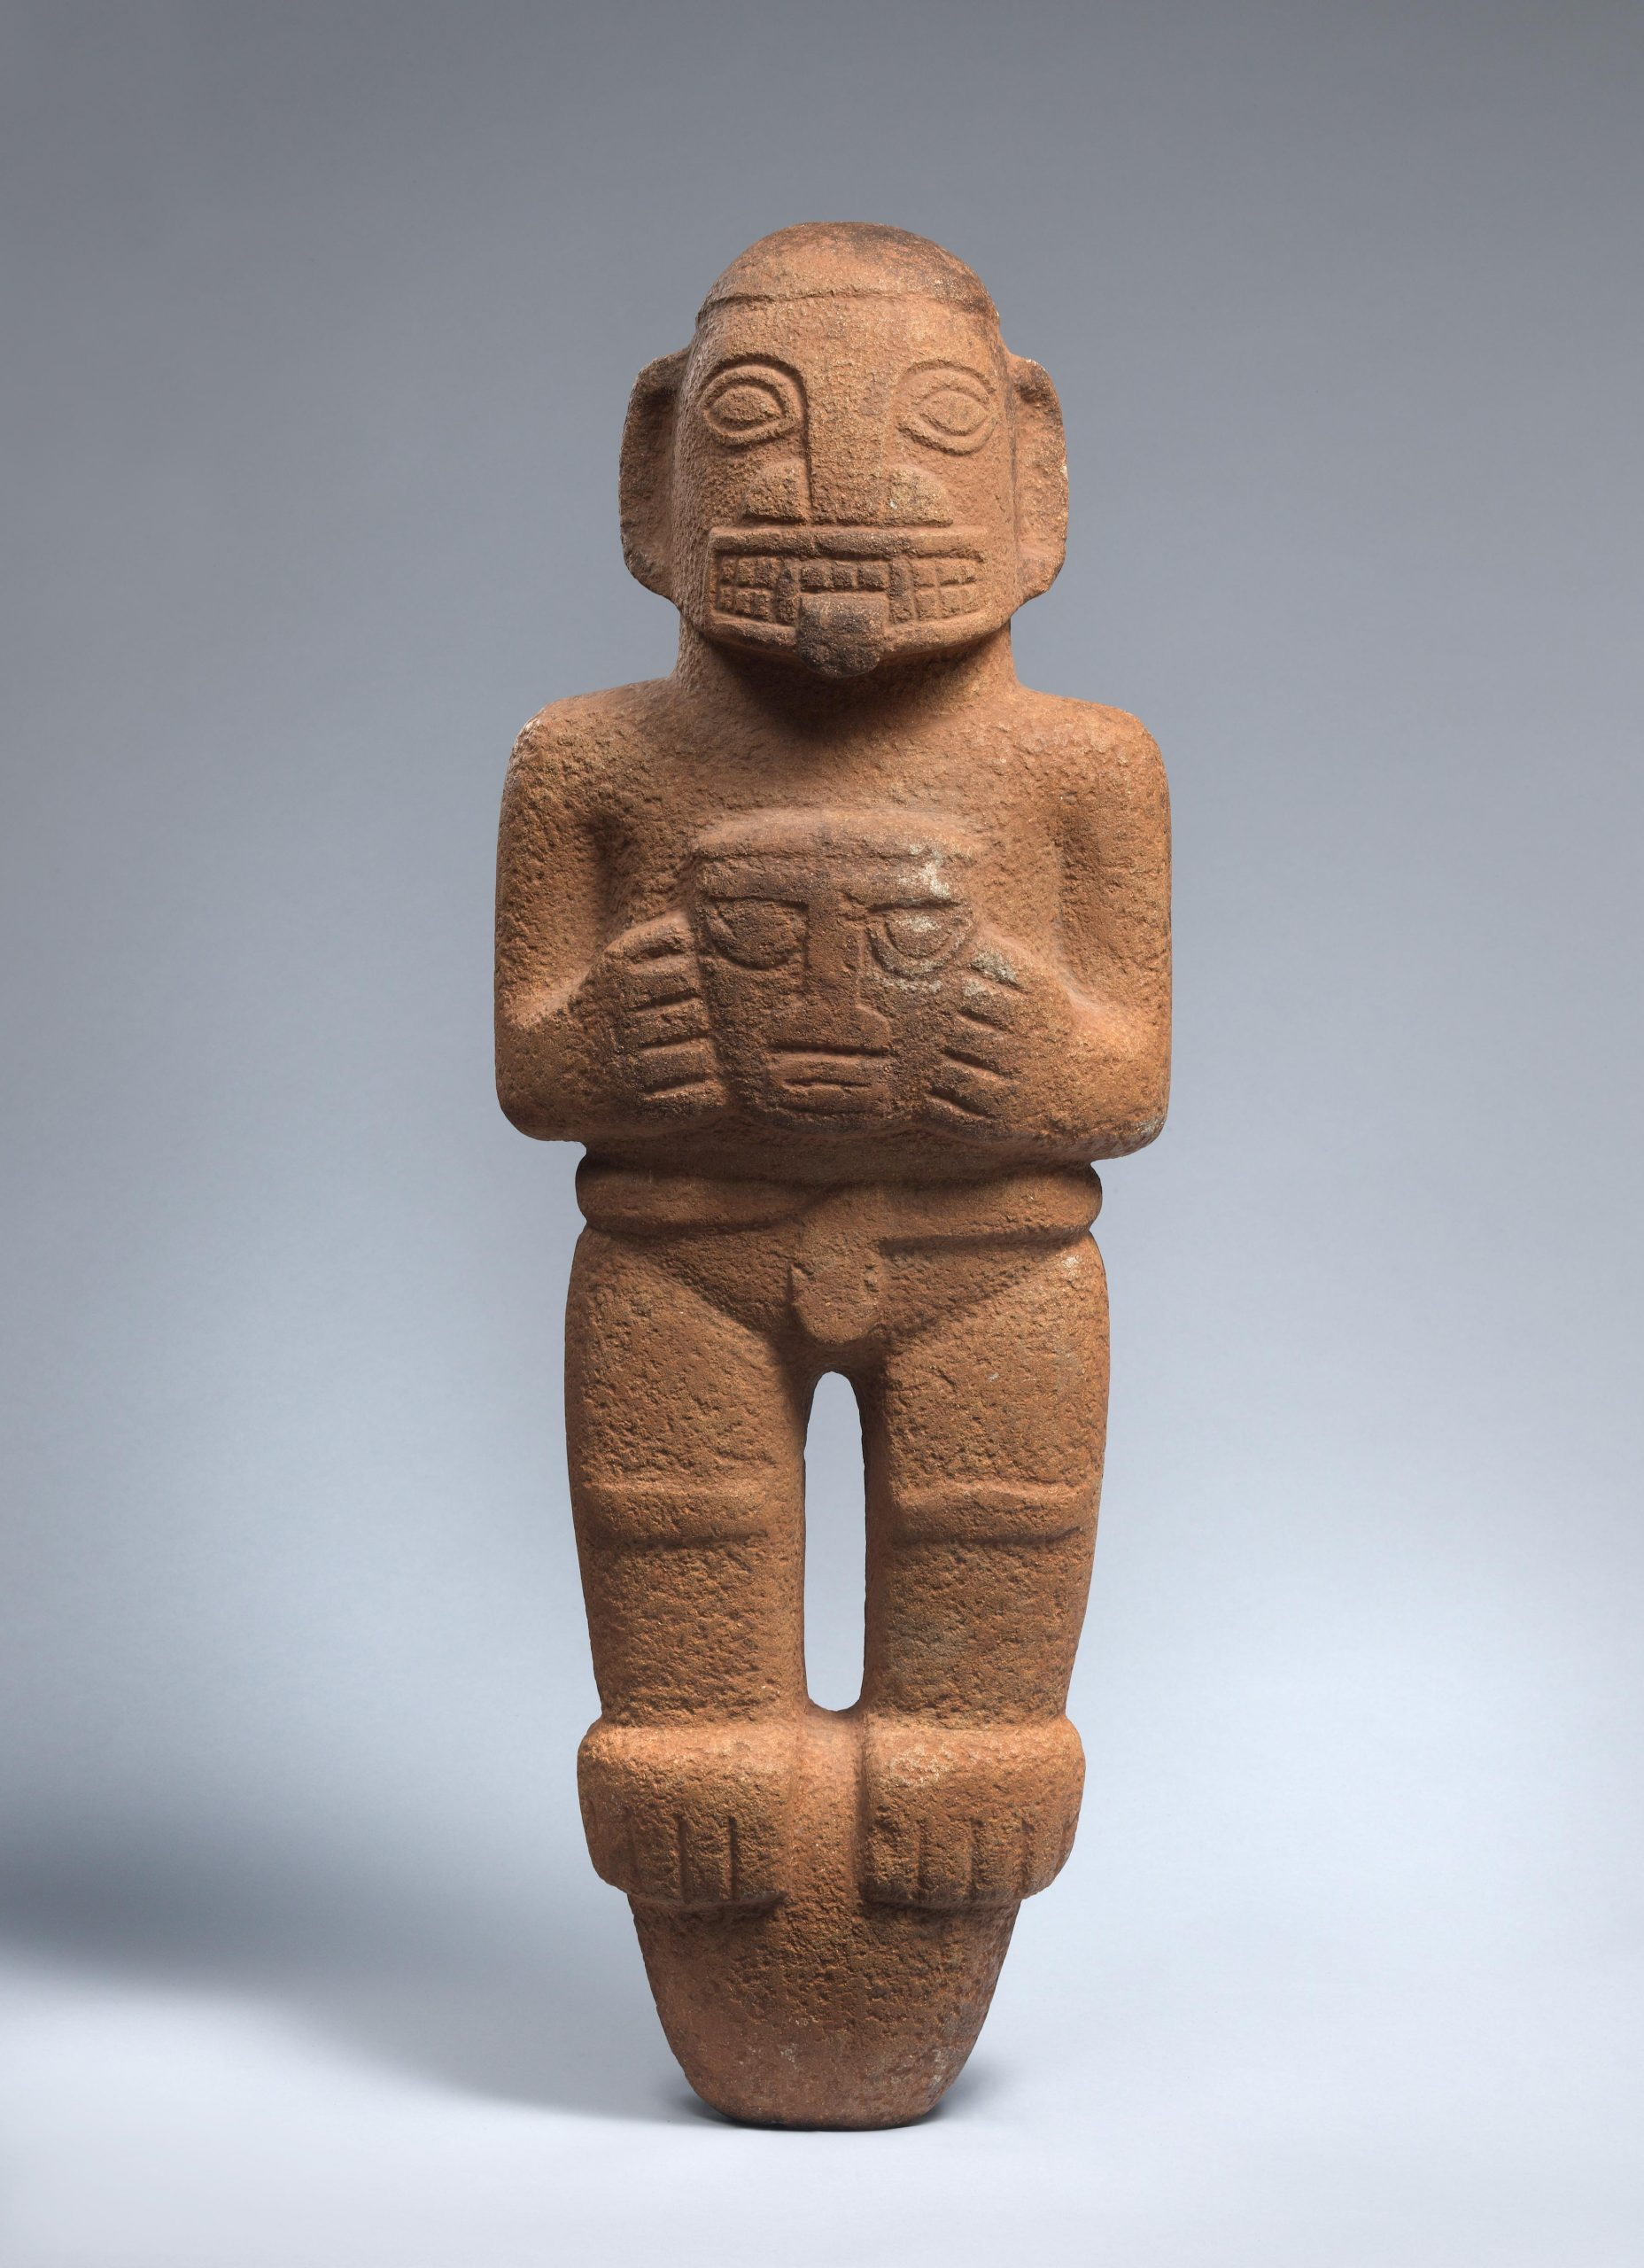 Stylized human figure carved into grey-green stone.